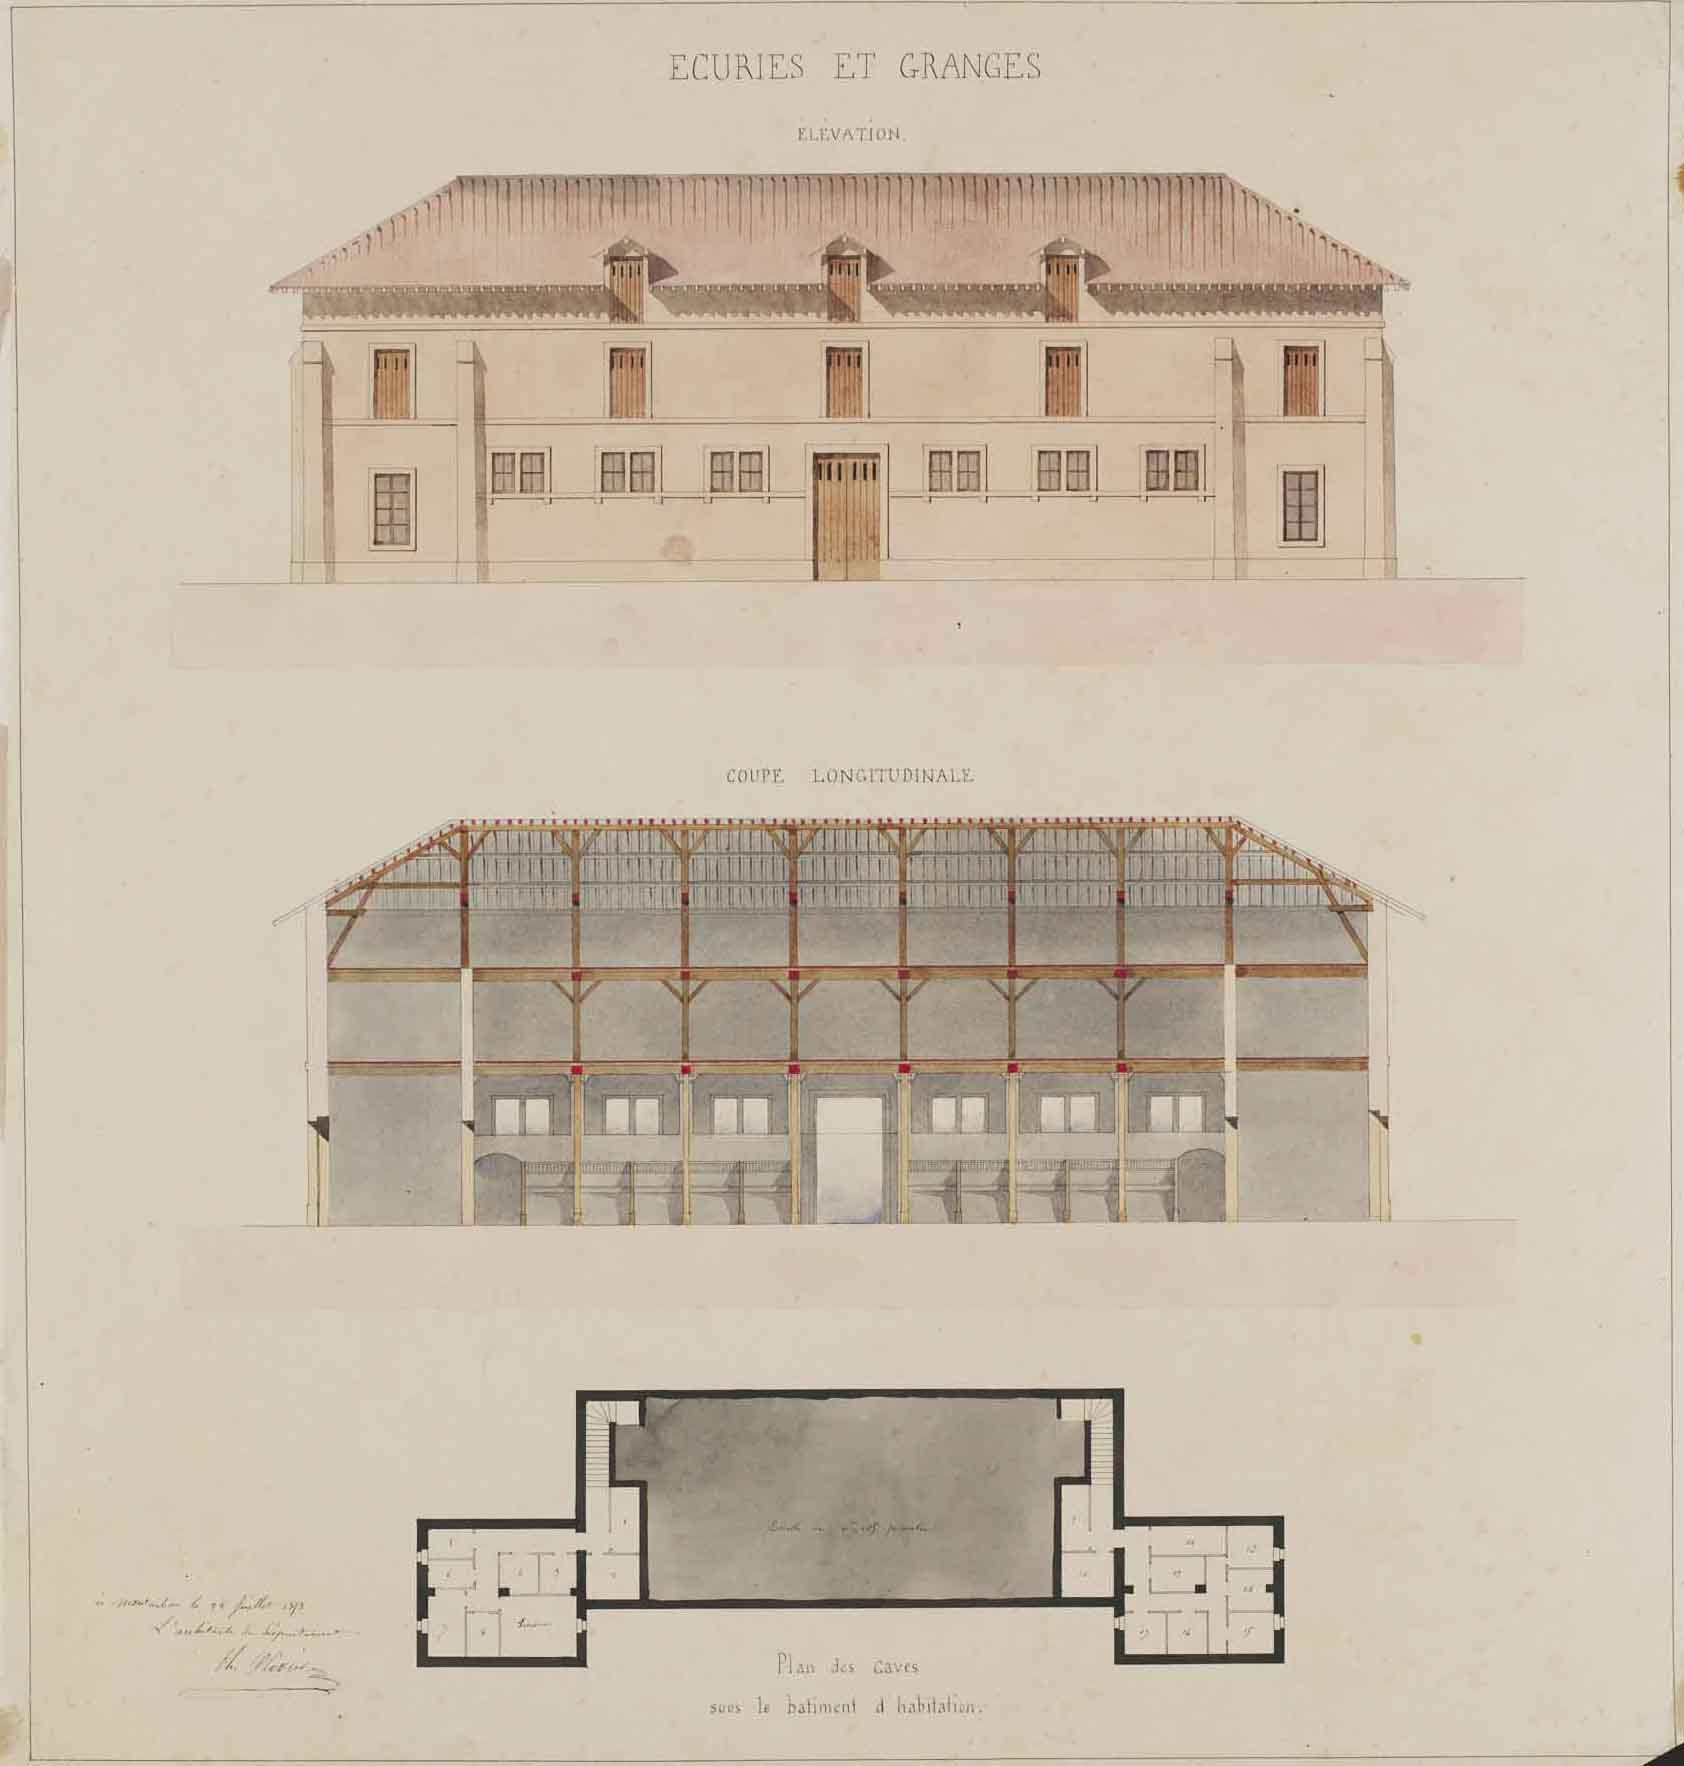 """Théodore Olivier (French, 1821-1899),  Stables and Barns: elevation, cross-section and plan,  1853,pencil and watercolor on paper, 34 1/4 x 32 1/4"""" framed"""